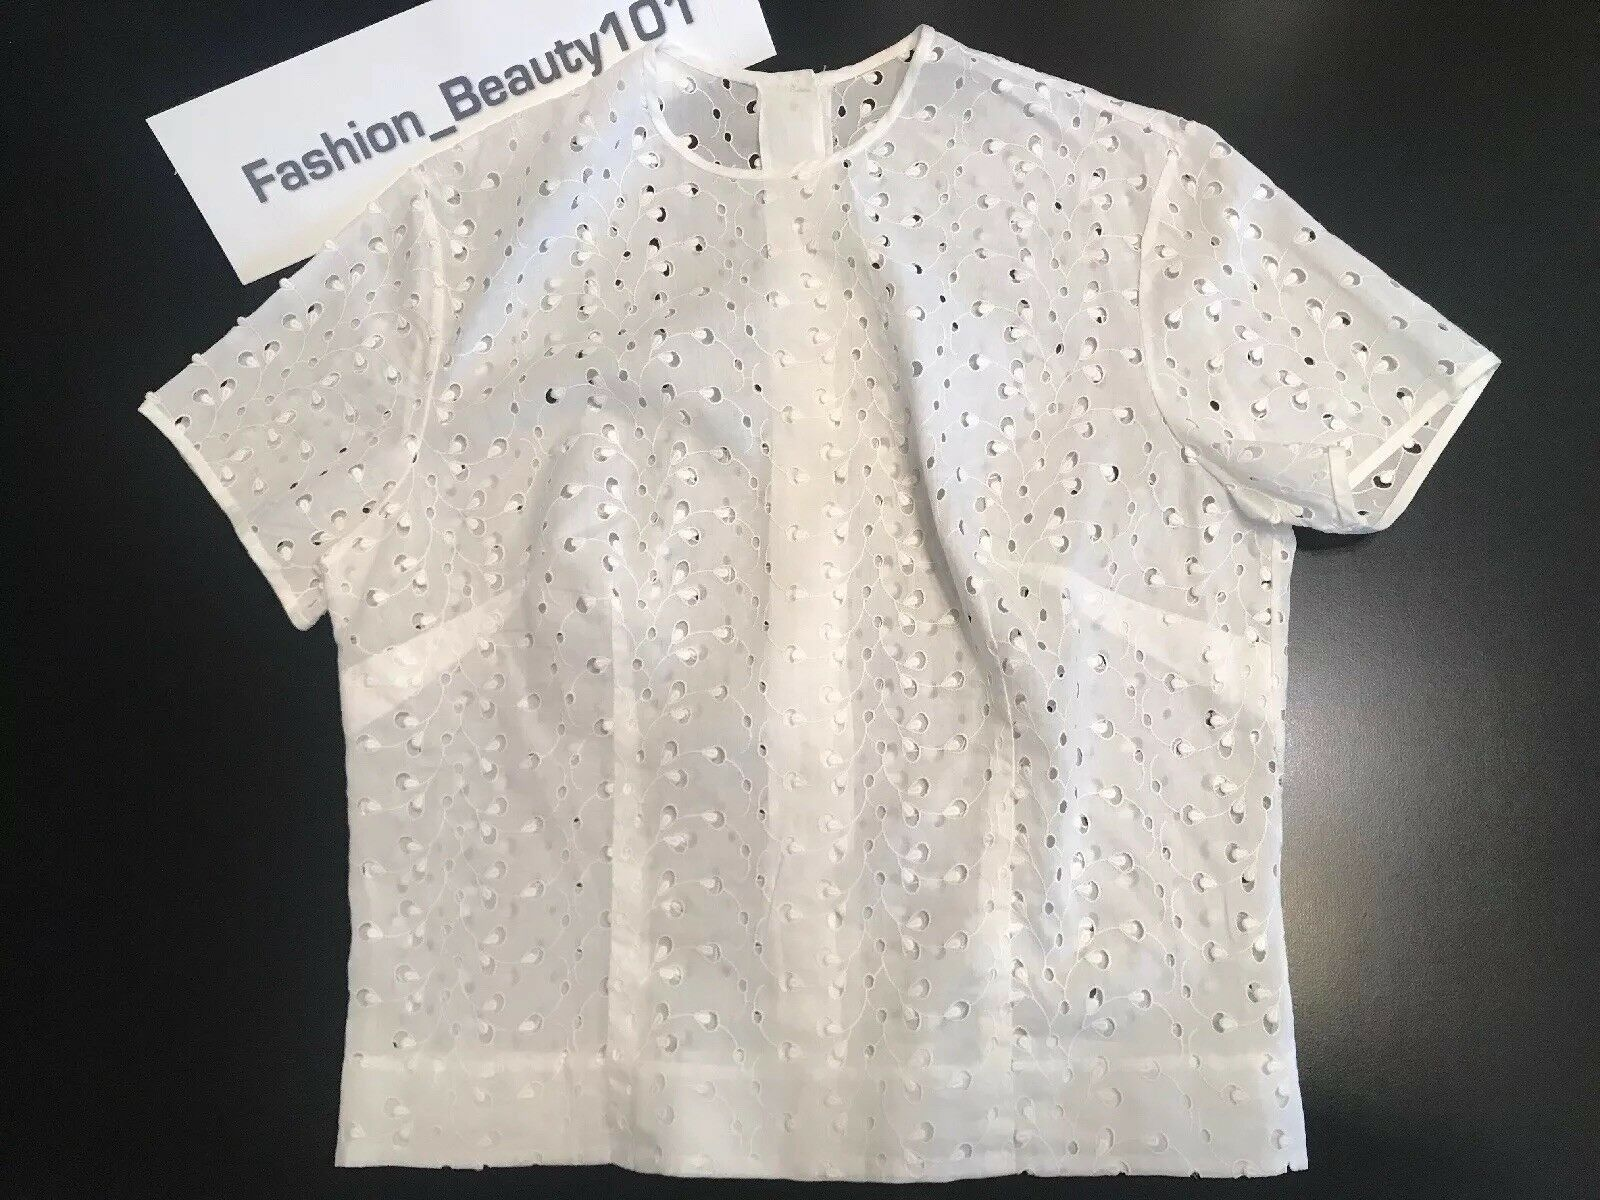 VTG Gorgeous High waist Lace Blouse In White Cotton Size 4 Perfect For Petite